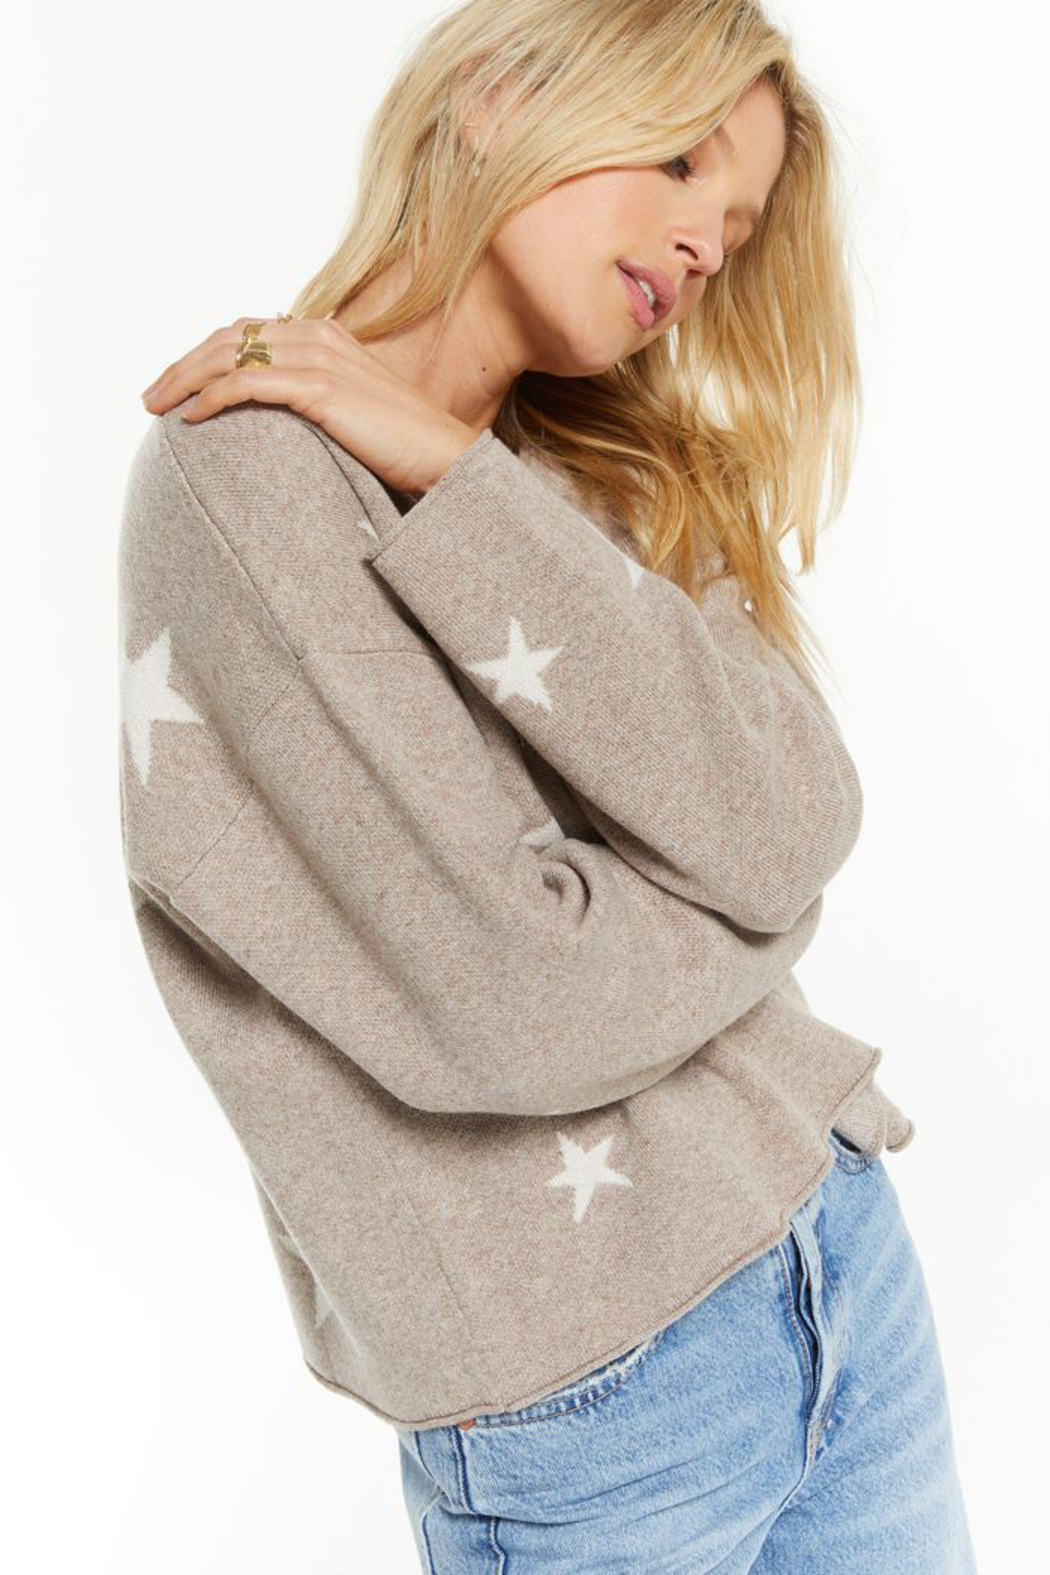 z supply Kennedy Star Sweater - Side Cropped Image